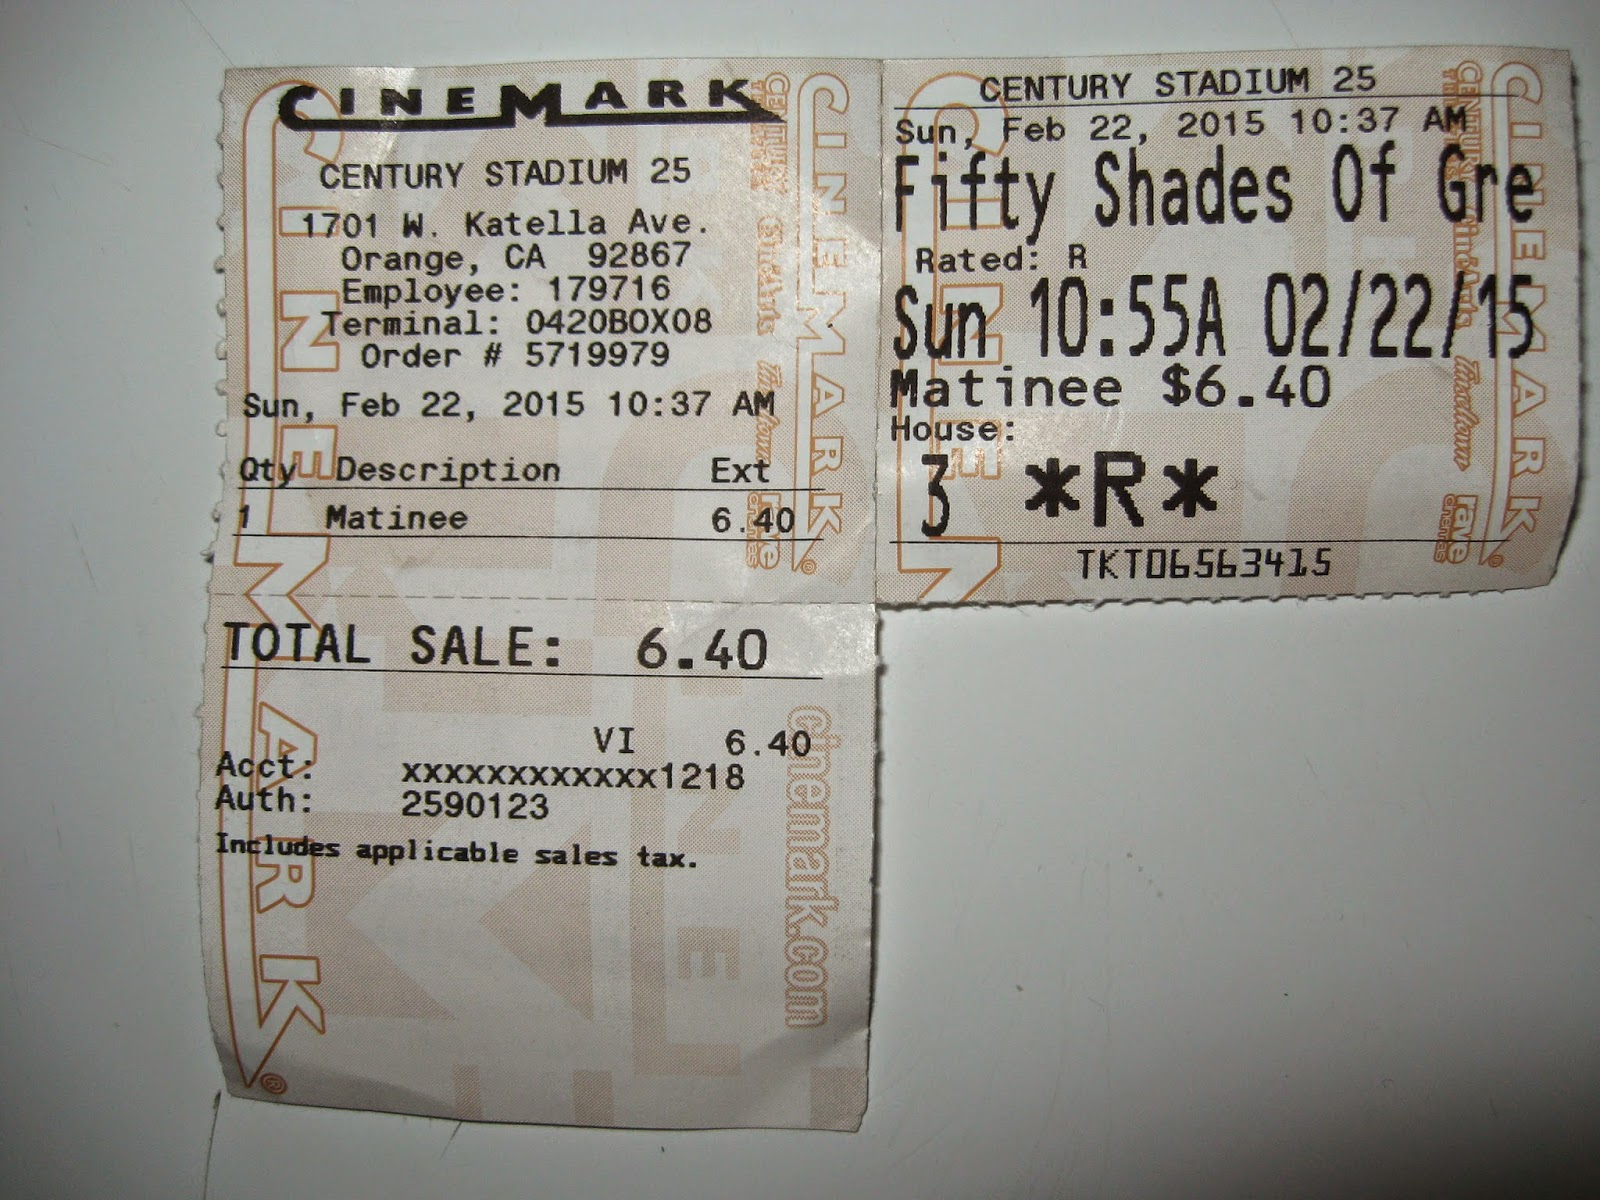 Cinemark Ticket Stub